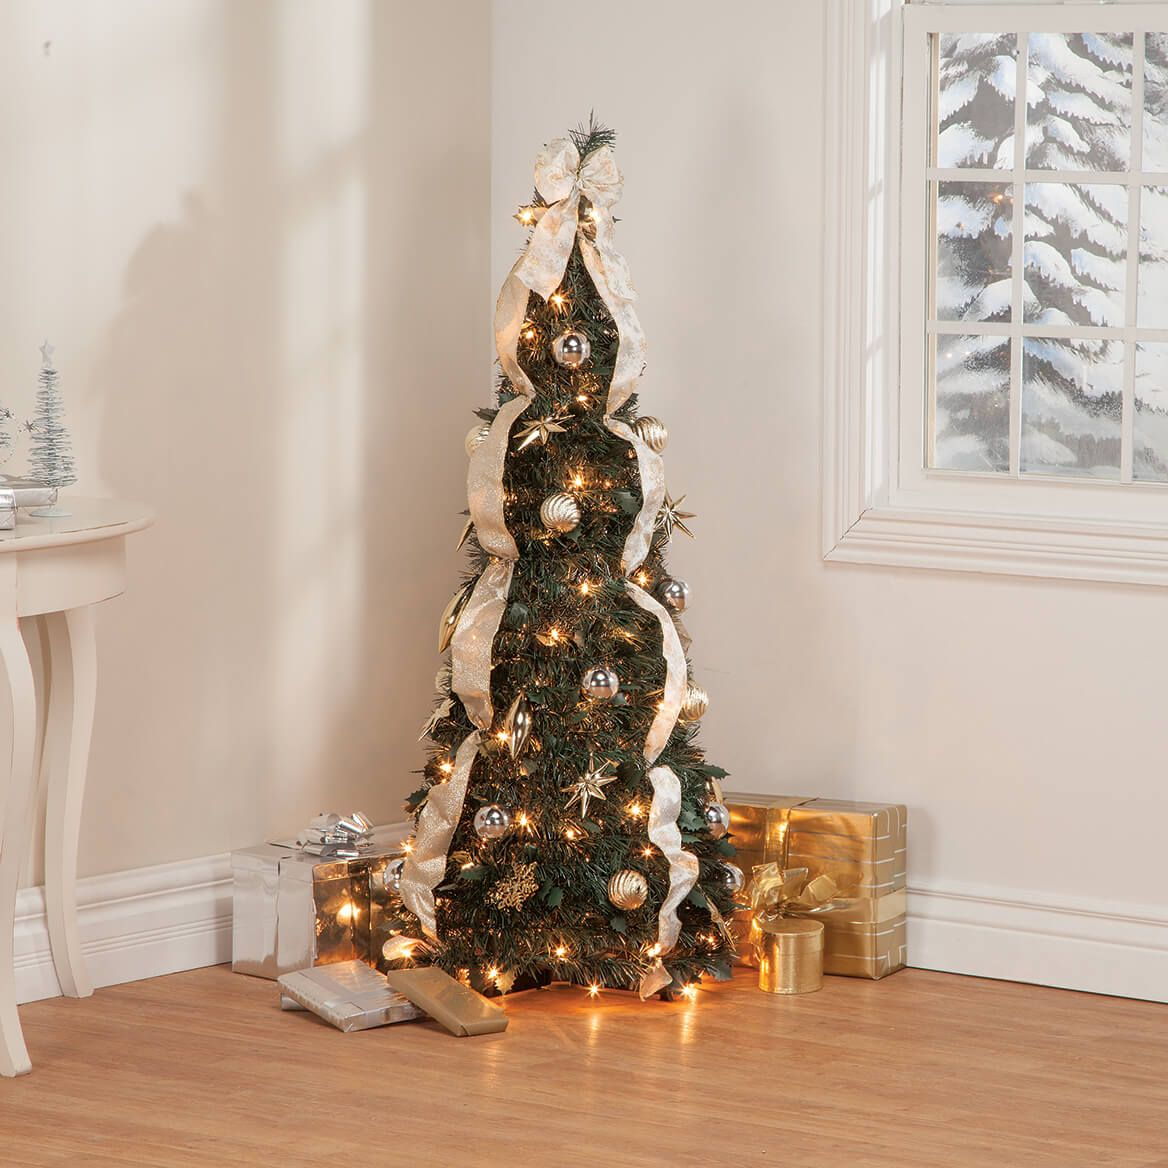 4' Silver & Gold Pull-Up Tree by Holiday Peak™     XL-368086